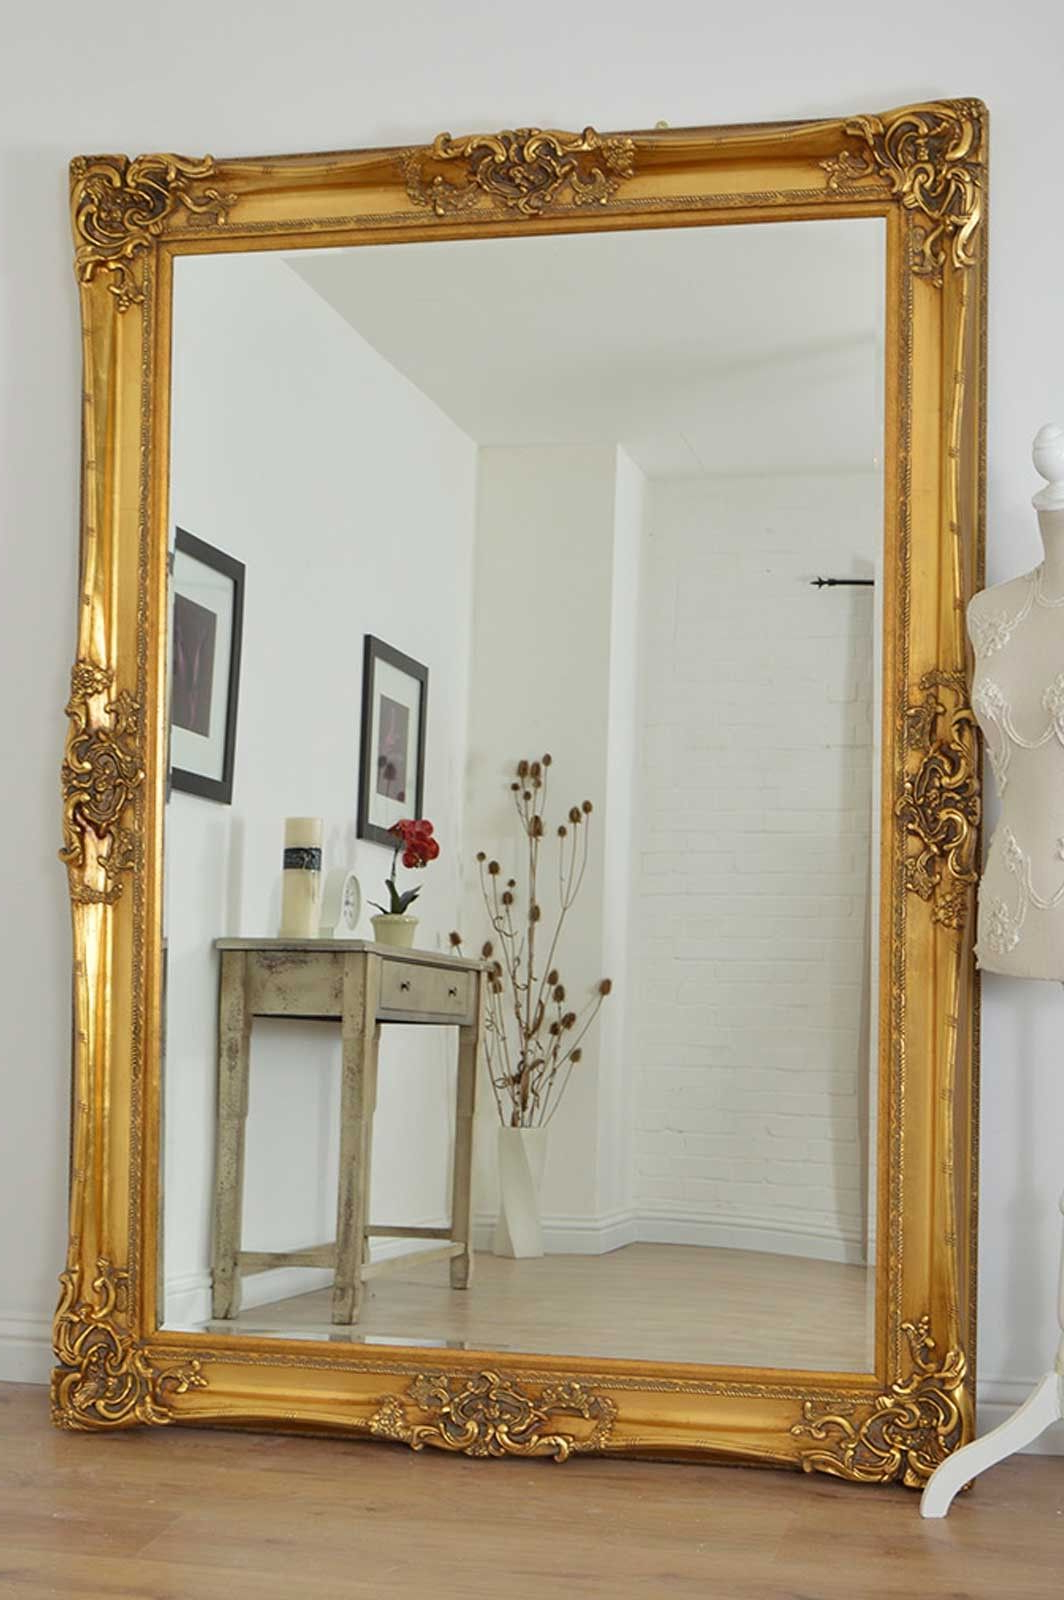 Trendy Standard Wall Mirrors Throughout Large Gold Very Ornate Antique Design Wall Mirror 7Ft X 5Ft (213Cm X (View 18 of 20)